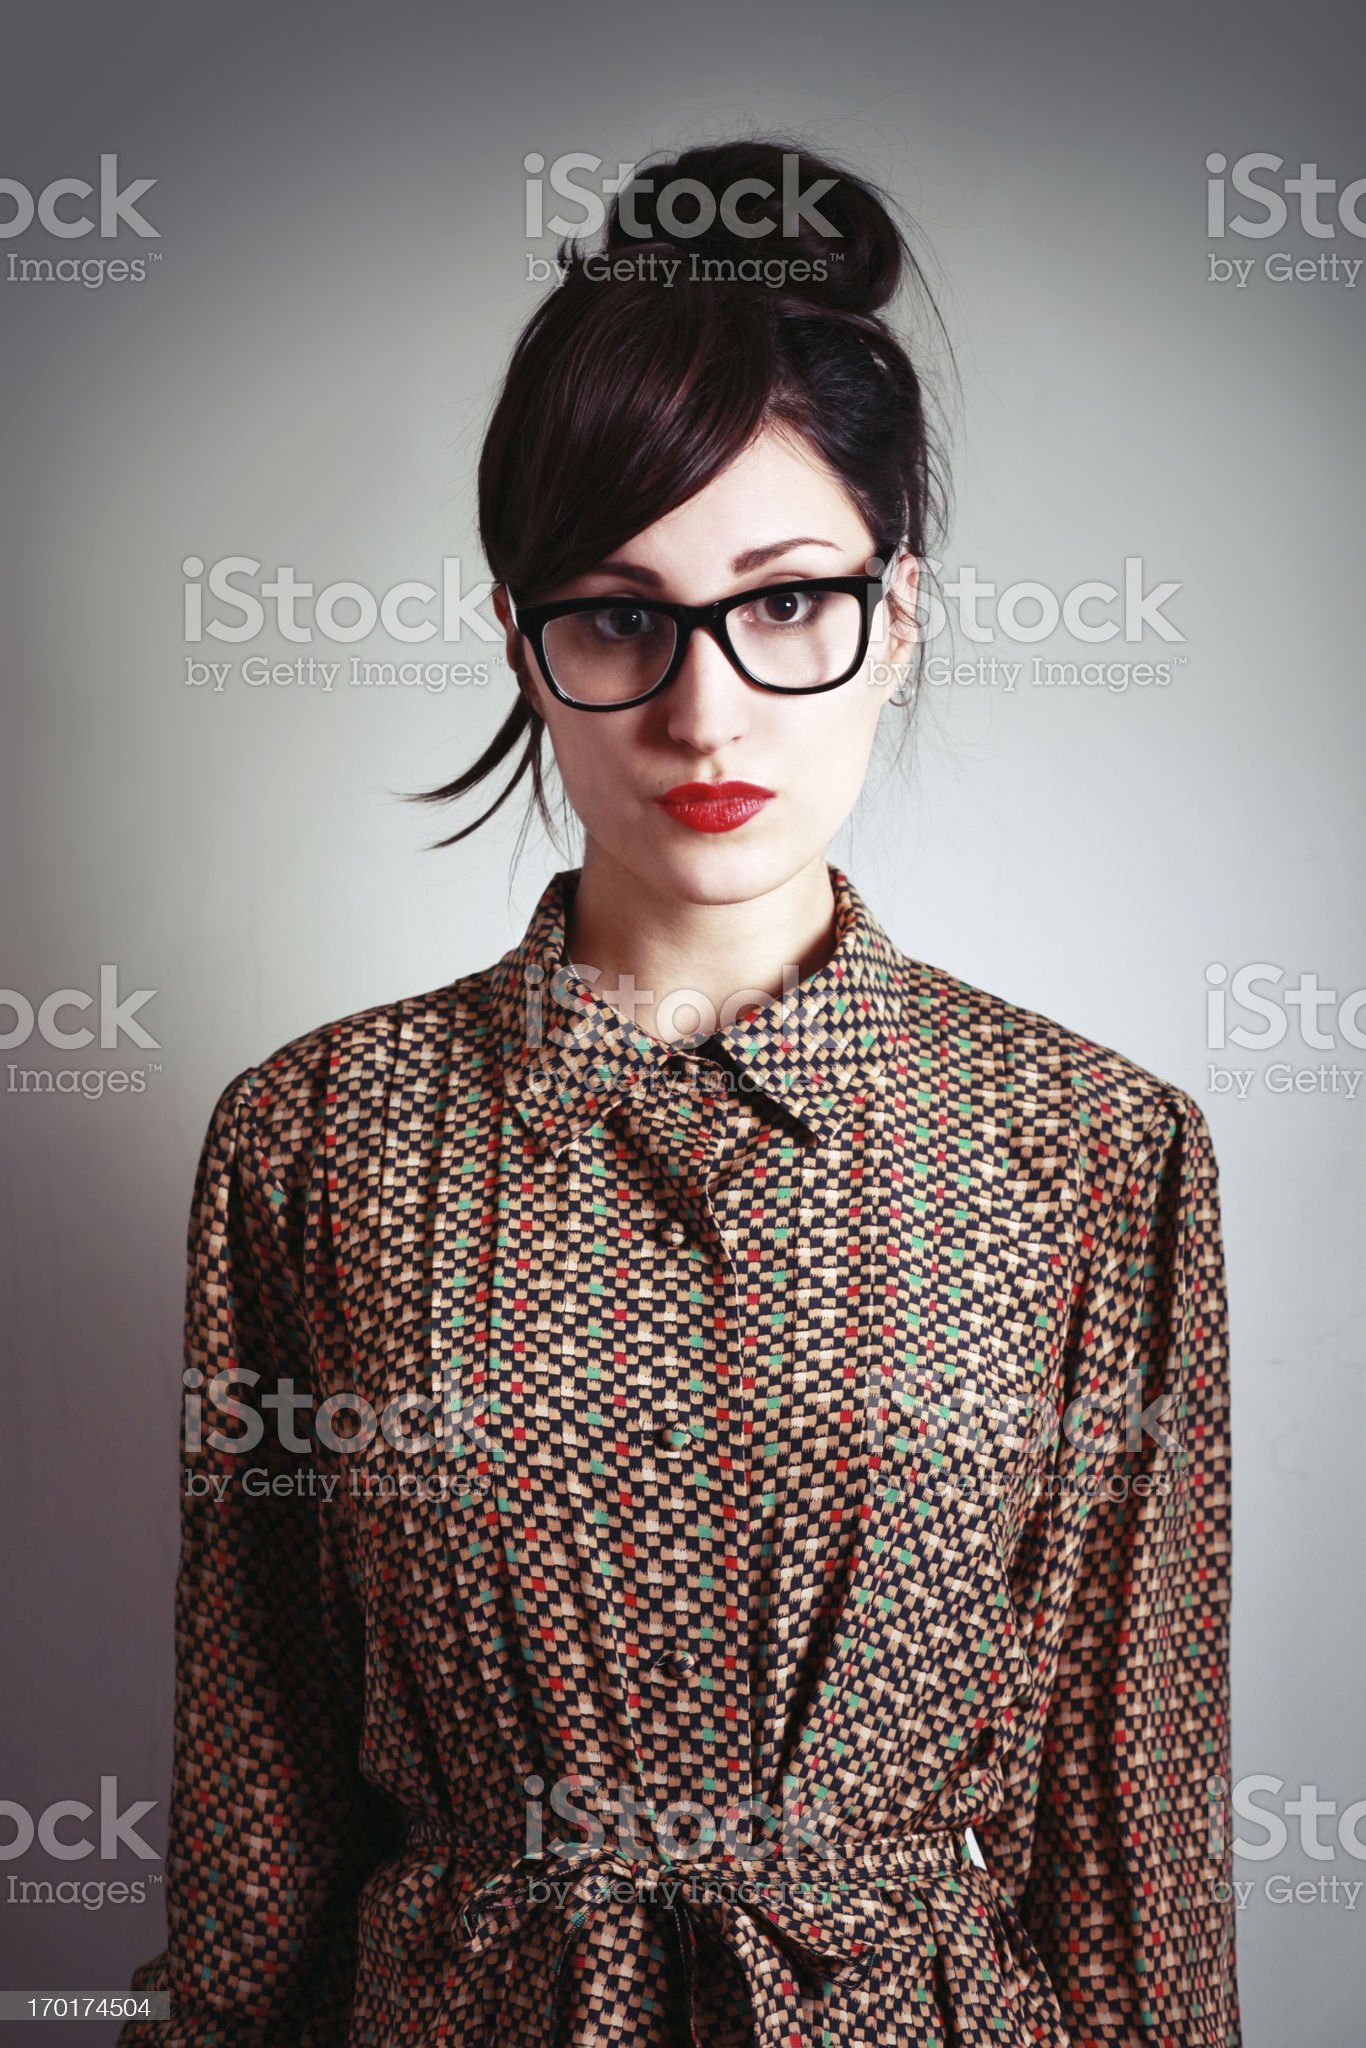 geeky hipster fashion royalty-free stock photo